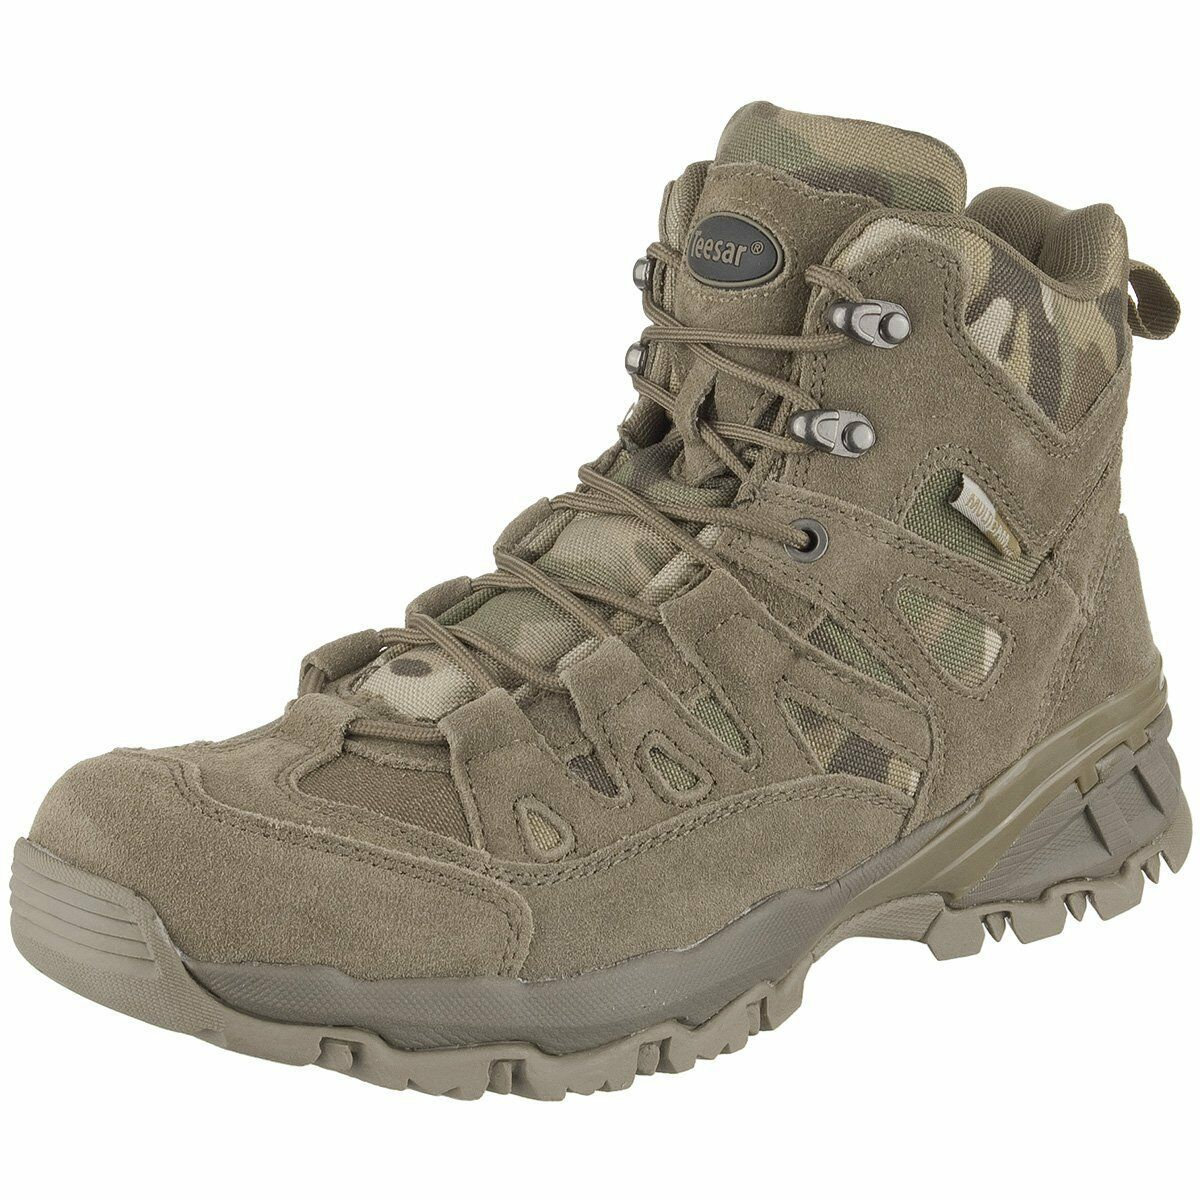 MULTICAM US Squad TACTICAL Stiefel ARMY OUTDOOR Freizeit STIEFEL 12 Stiefel US 12 STIEFEL EU 45 9de2e8